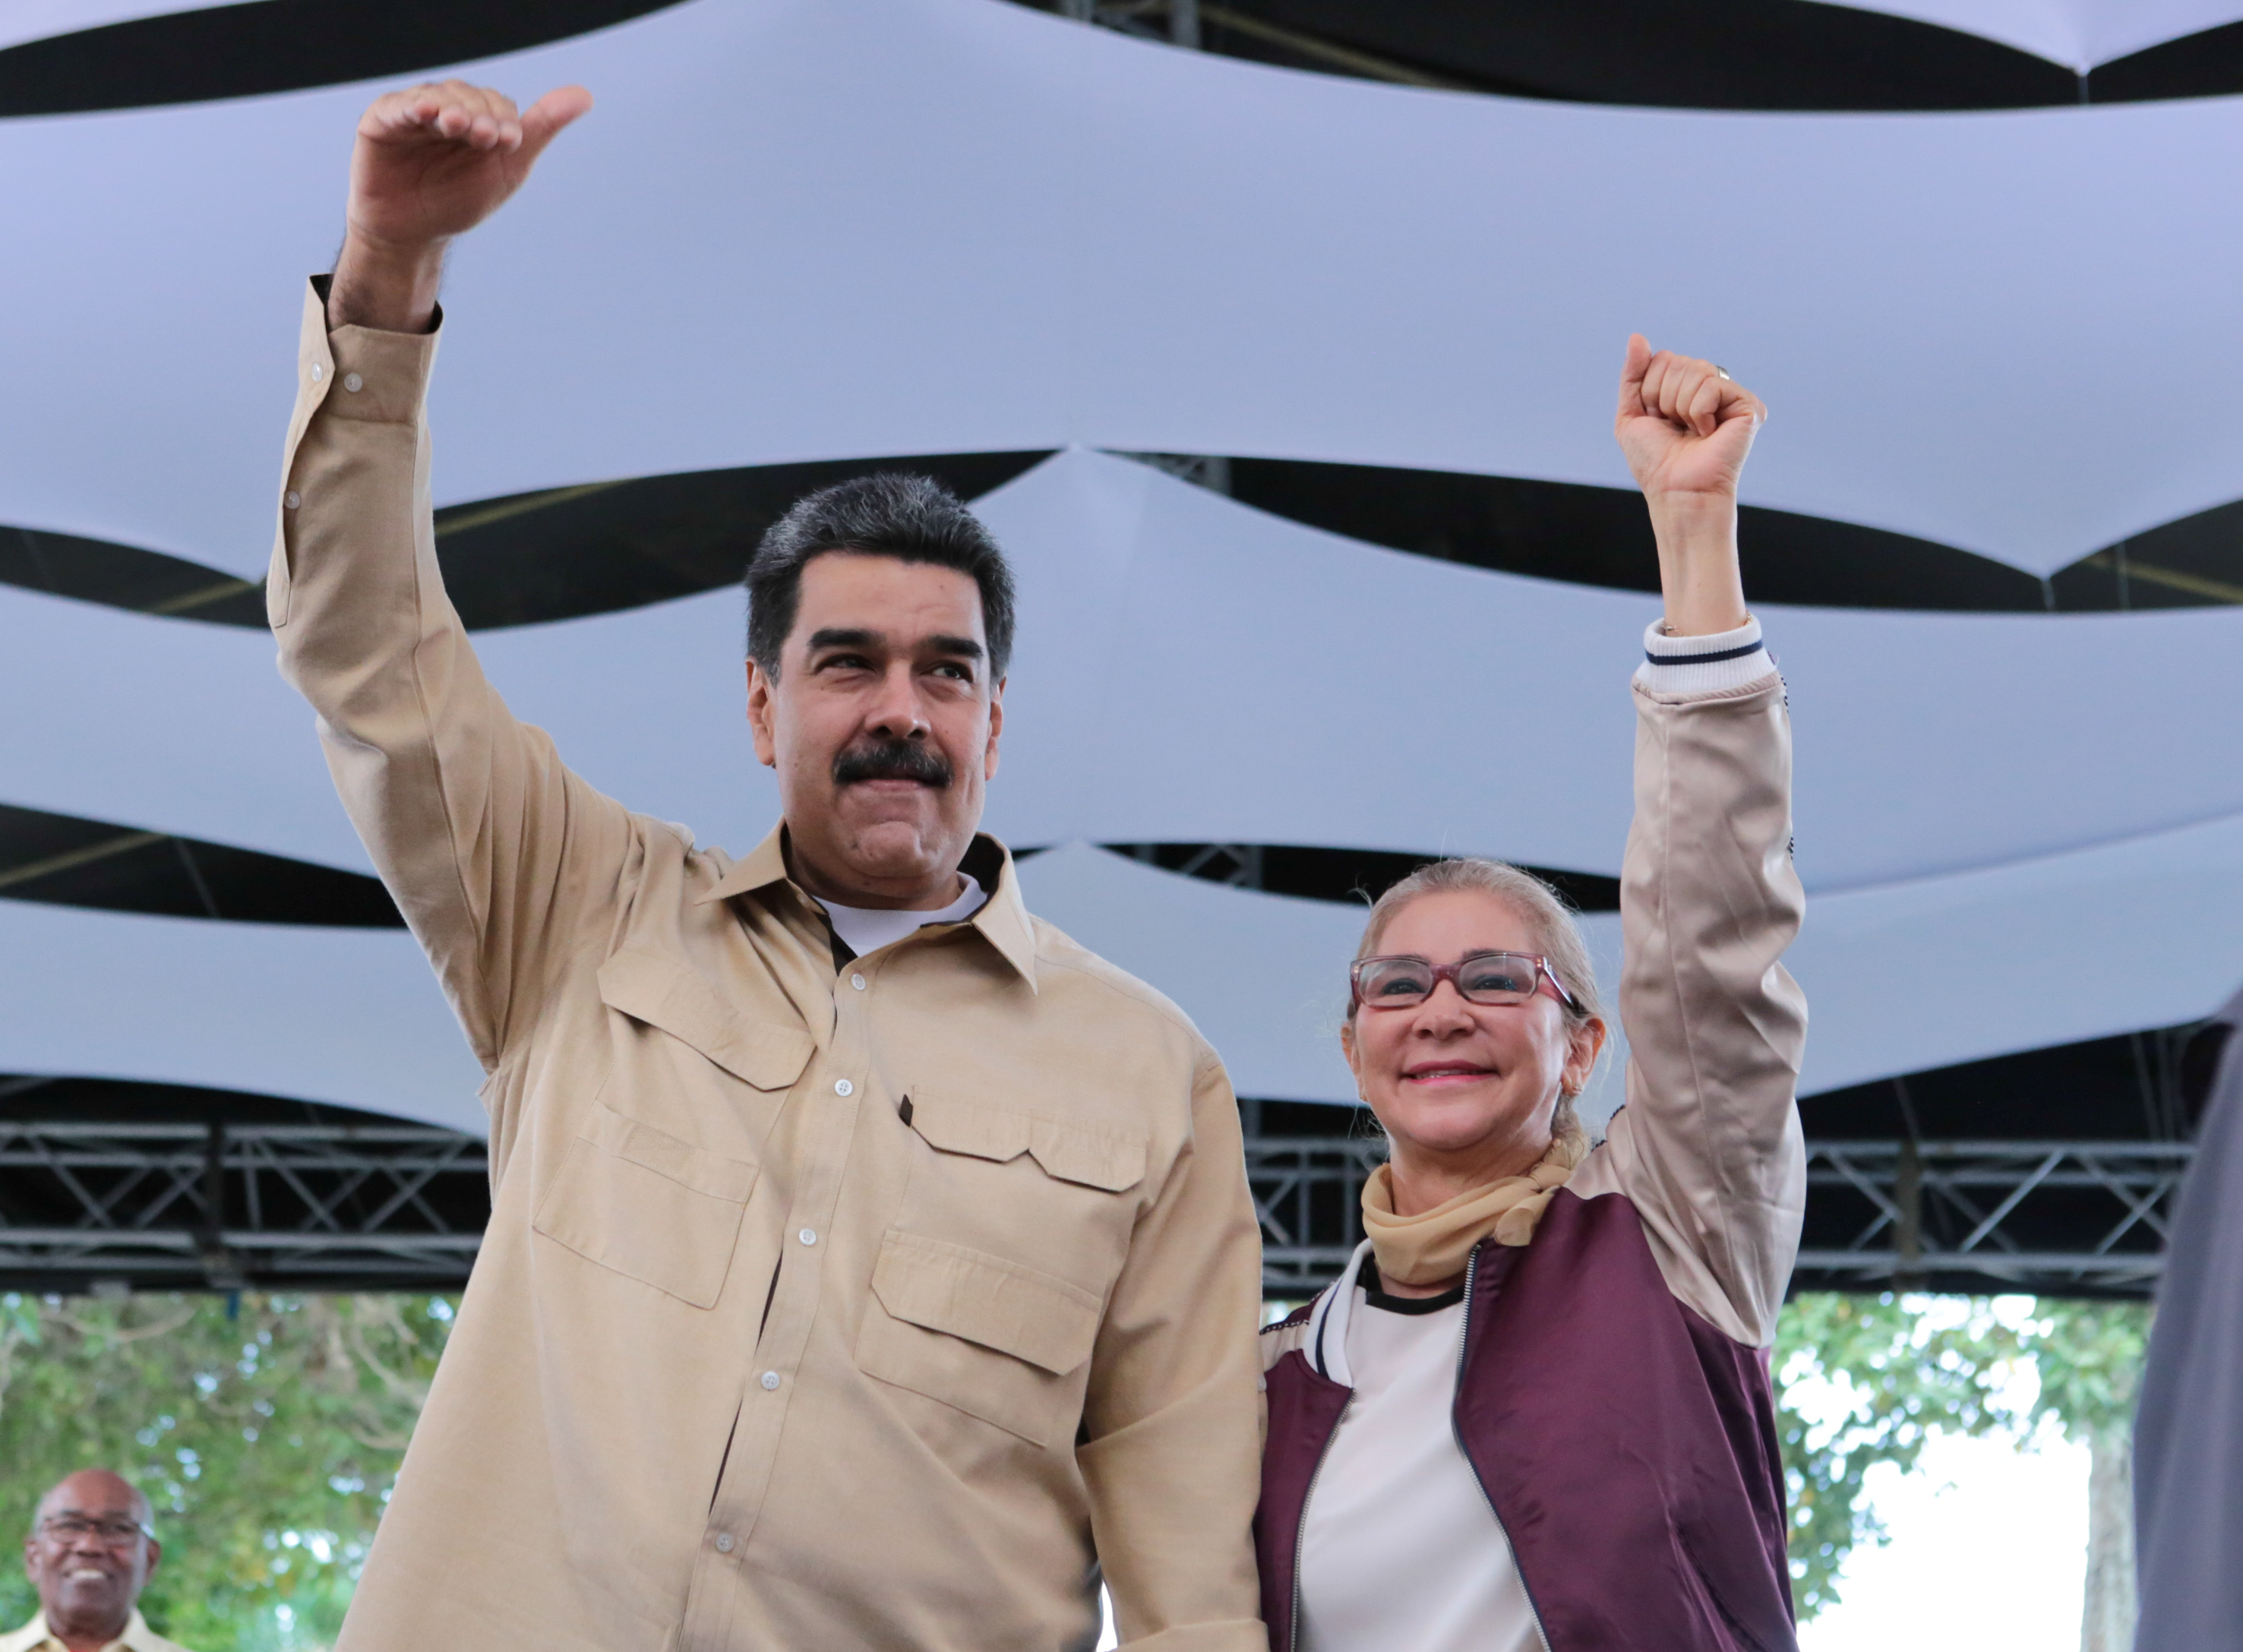 Venezuela's President Nicolas Maduro and his wife Cilia Flores gesture during a meeting with youths in Caracas